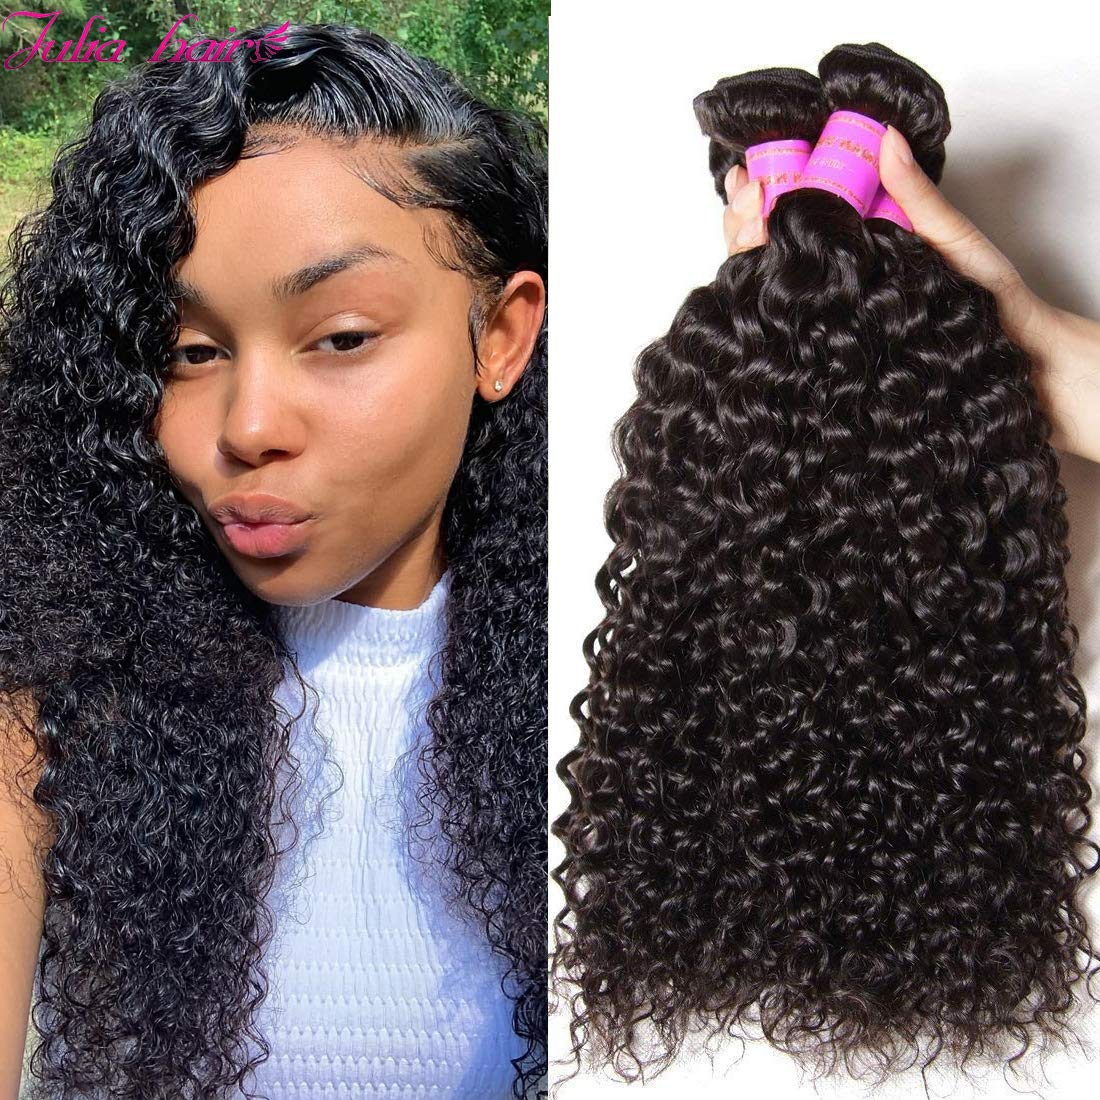 Amazon Com Ali Julia 10a Indian Virgin Curly Hair Weave 3 Bundles 12 10 8 Inch 100 Unprocessed Remy Human Hair Extensions 95 100g Pc Natural Black Color Beauty